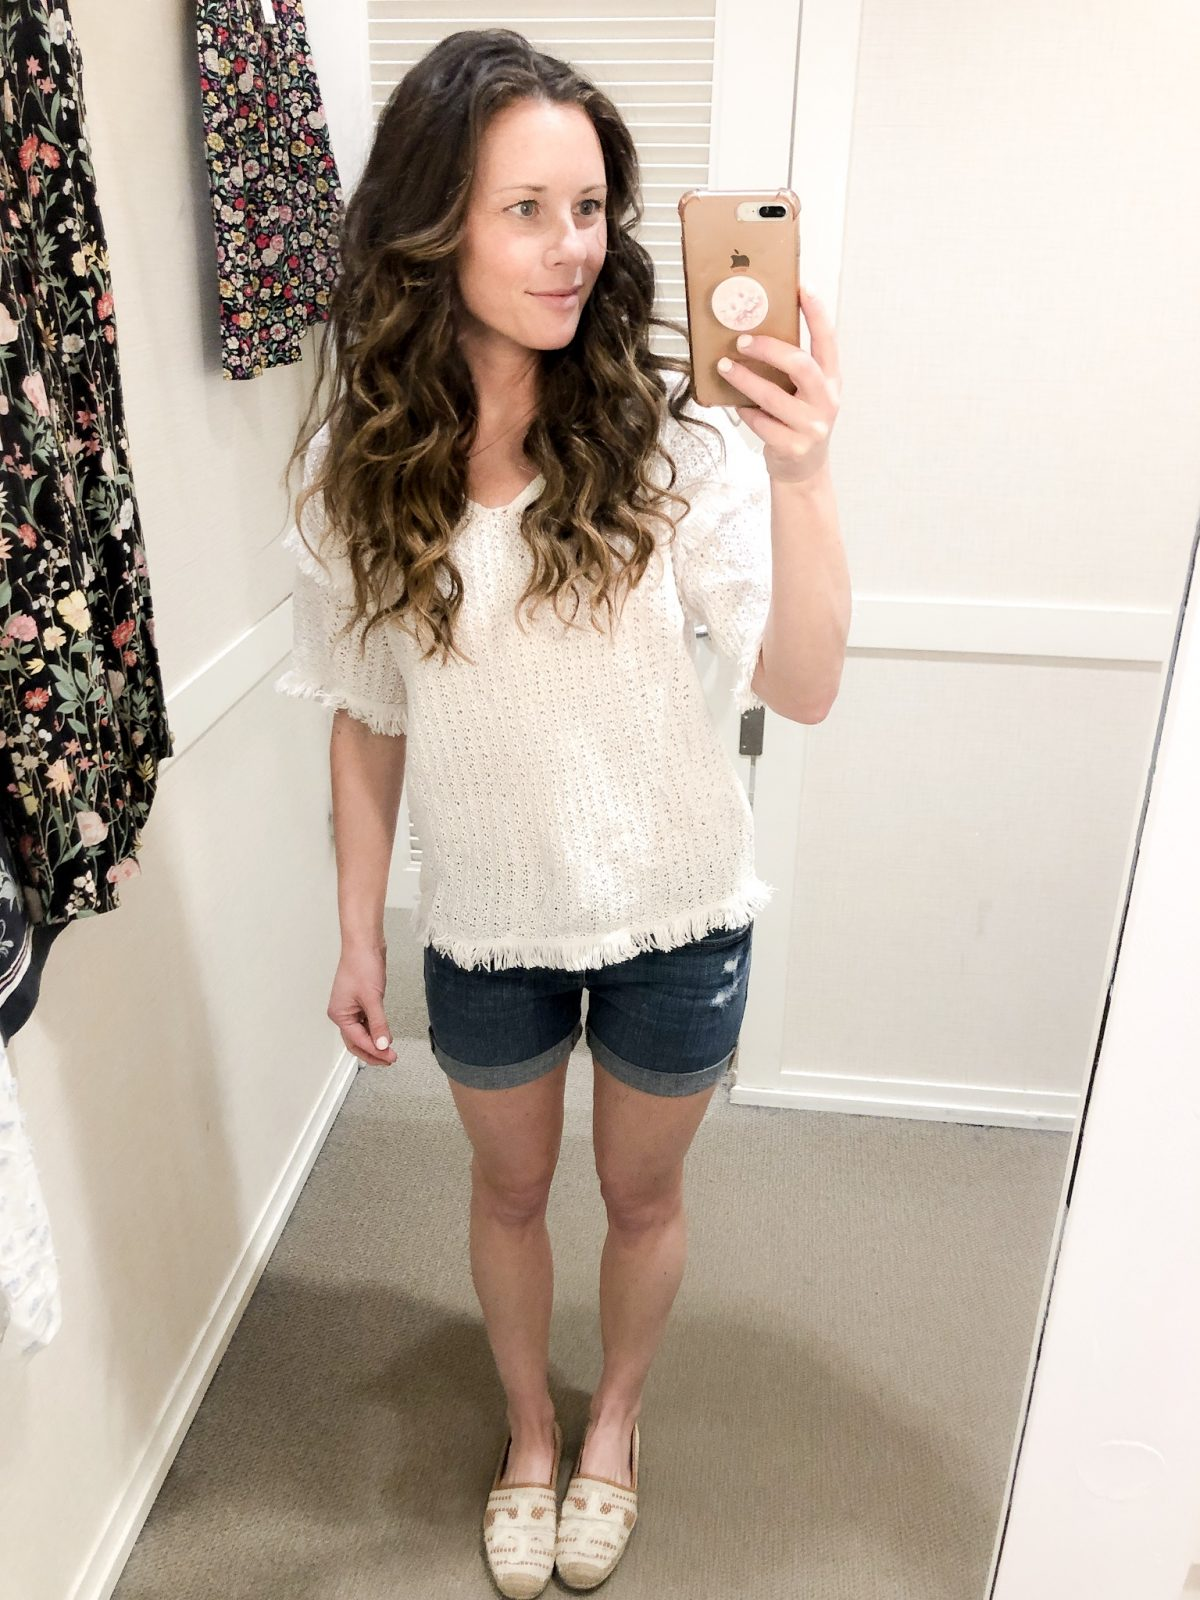 White Frayed Sweater and Denim Rolled Shorts with Tory Burch Espadrilles on Woman at LOFT Confessions of a Northern Belle